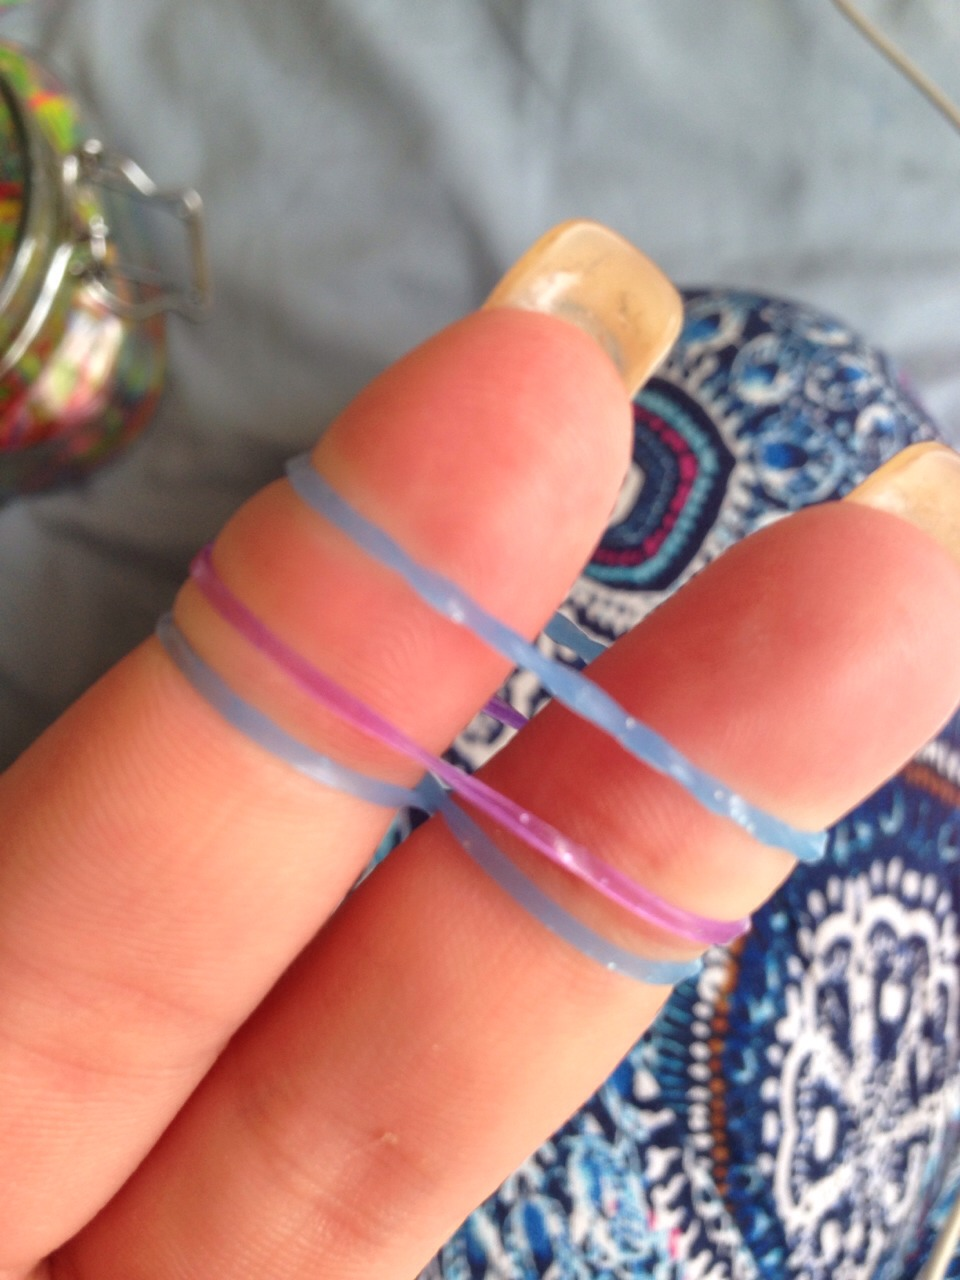 Take the third band and place over fingers like the purple band